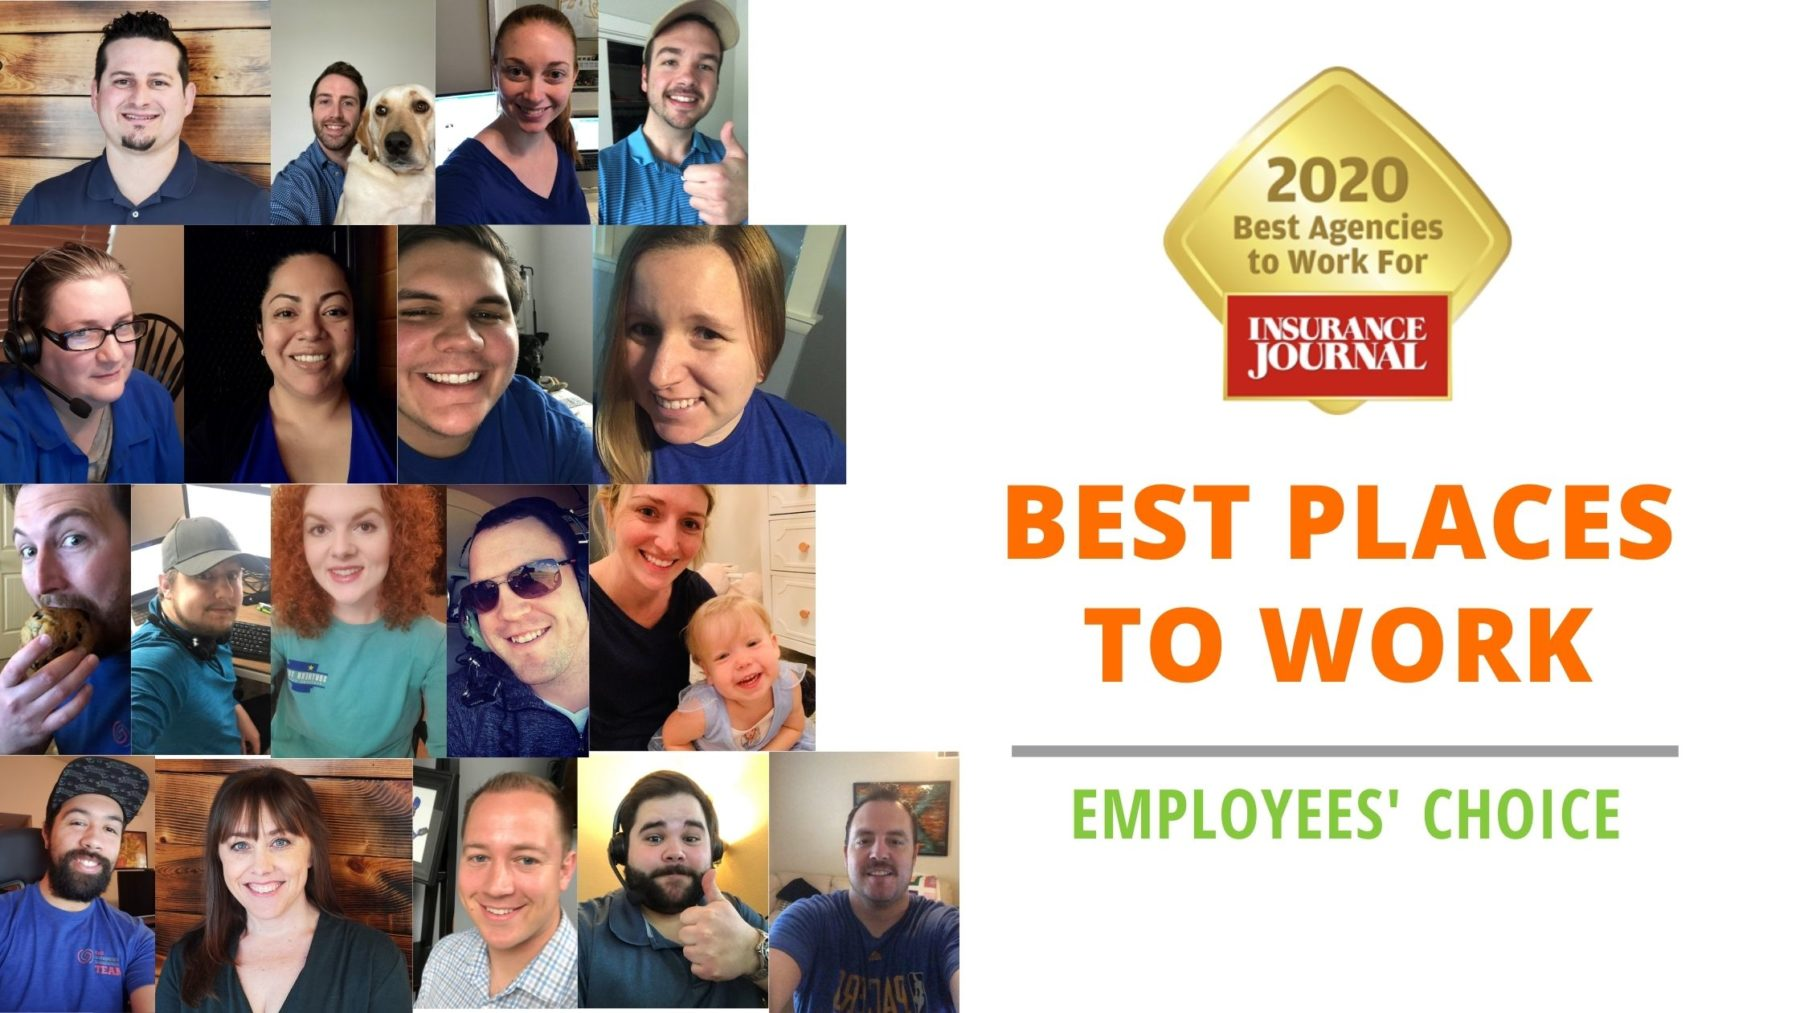 best place to work, best agency, employees choice, insurance journal